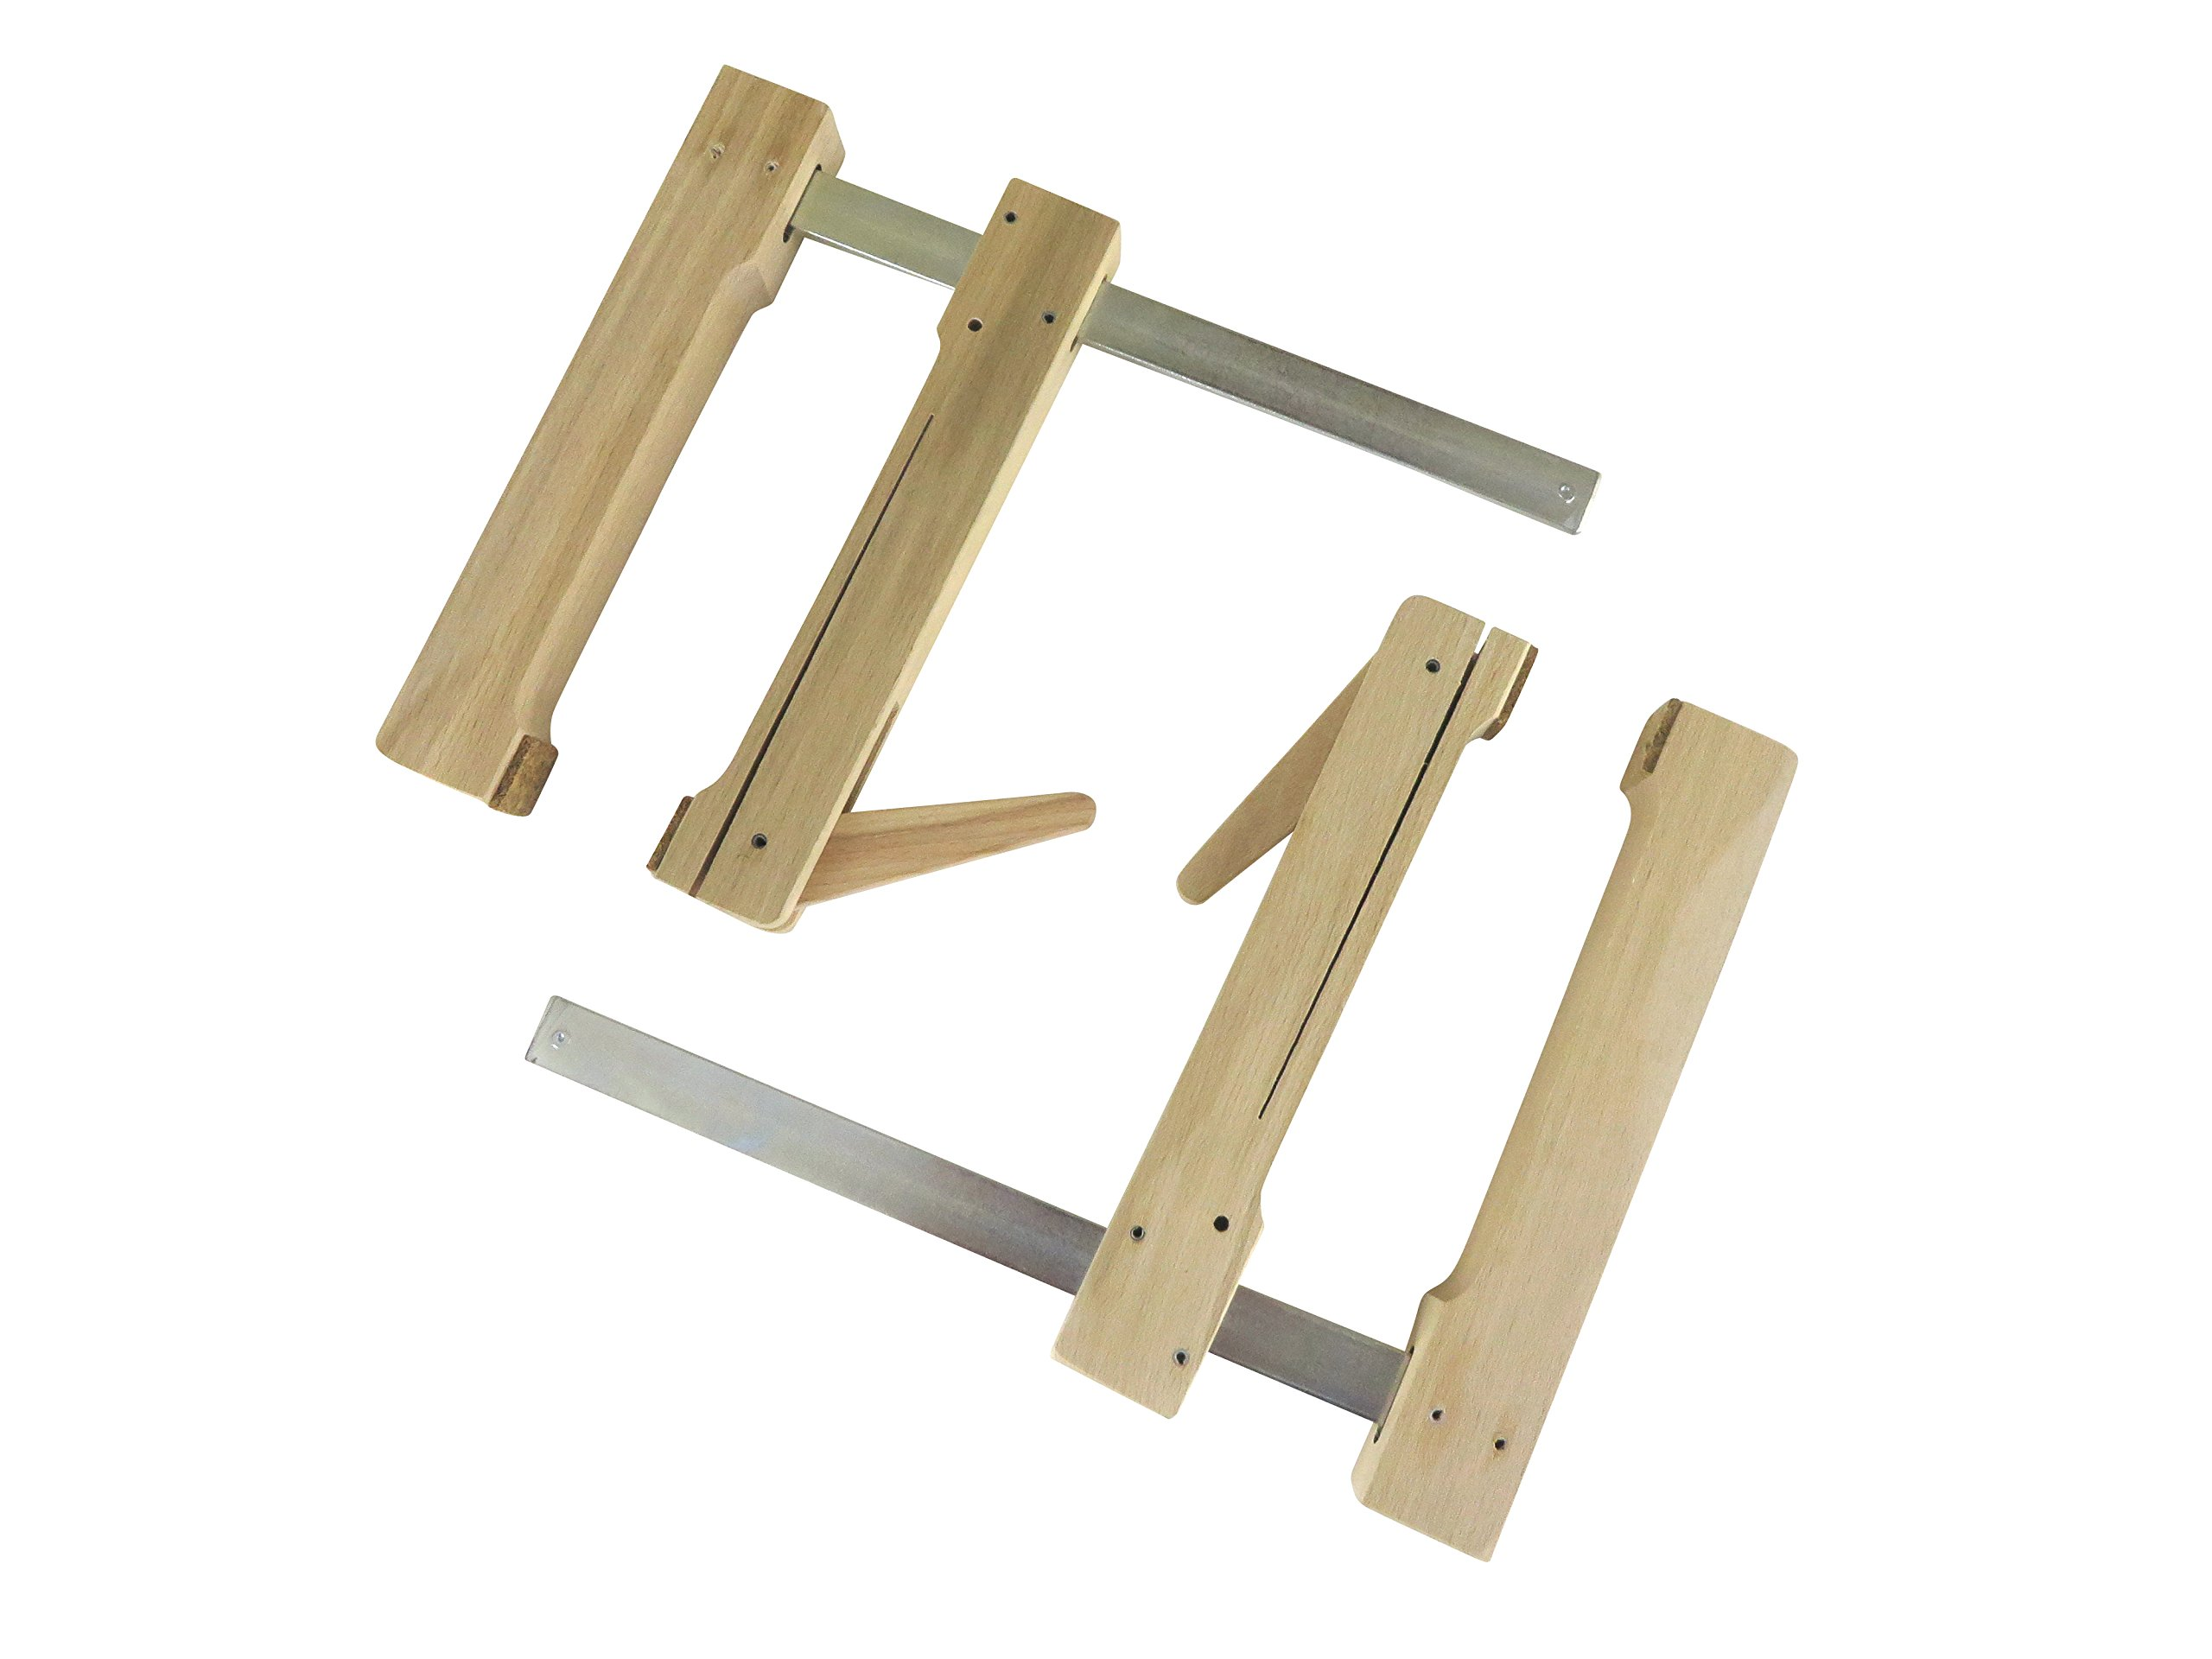 "2 each Pair Taytools 31-200 Wooden Wood Cam Action Clamps Deep Reach 7-1/2"" Opening by 7-1/2"" Depth European Beech"